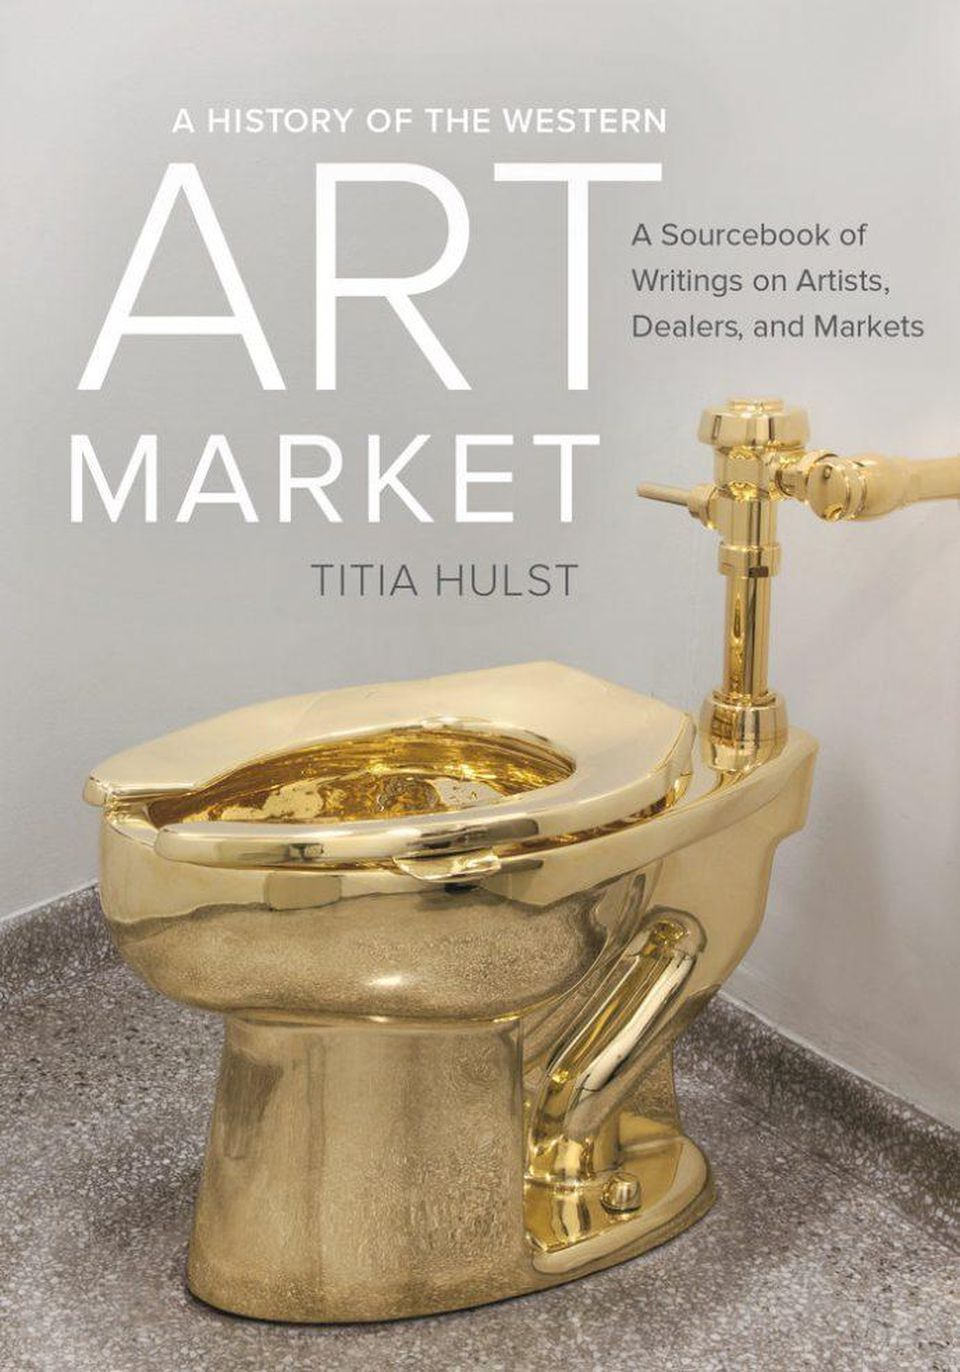 Hulst, Titia.  A History of the Western Art Market: A Sourcebook of Writings On Artists, Dealers, and Markets . Oakland, California: University of California Press, 2017.